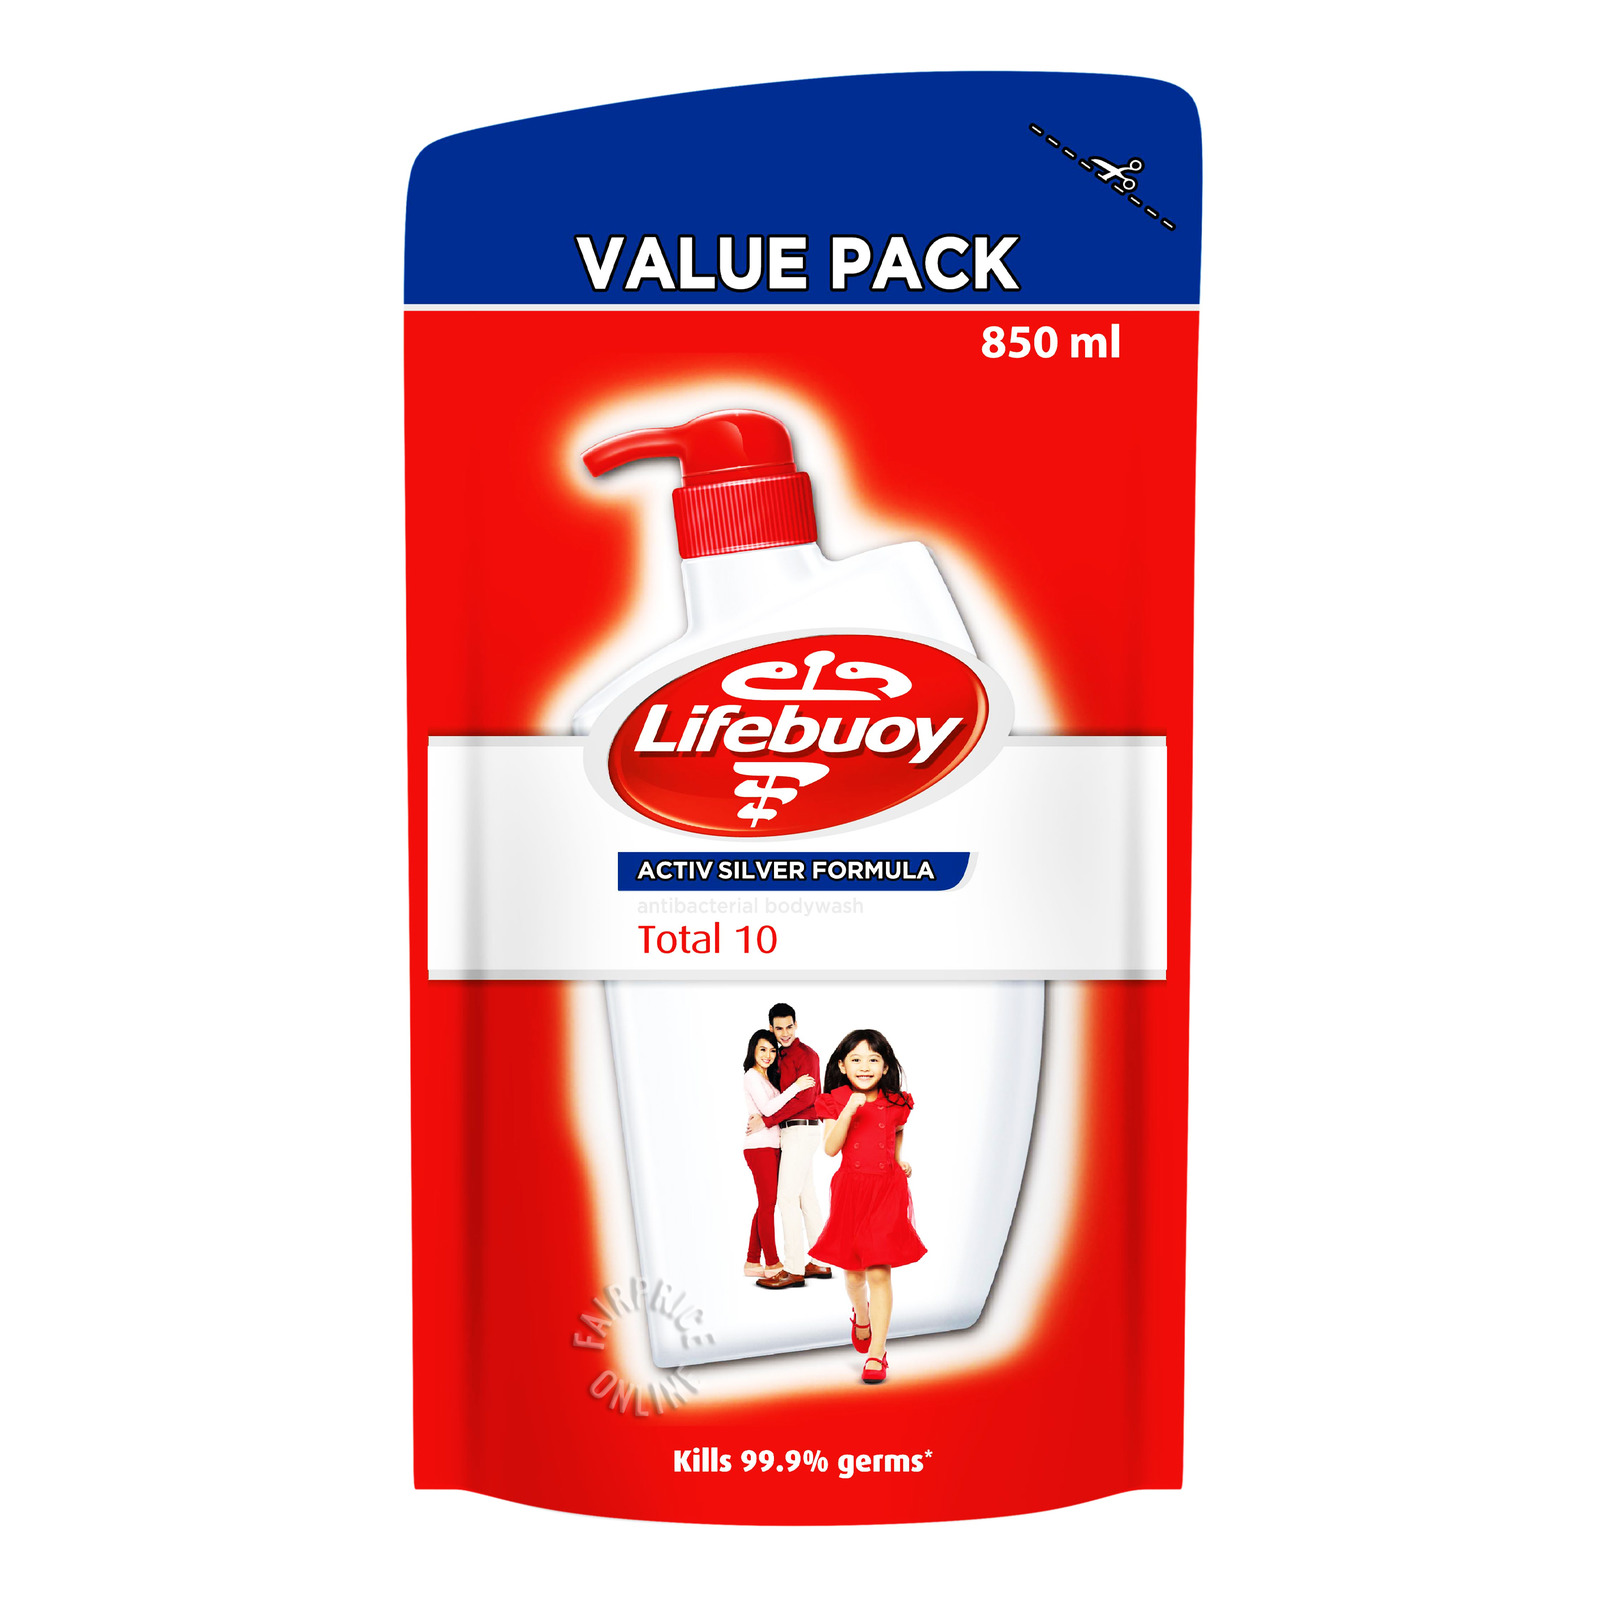 Lifebuoy Total 10 Anti-bacterial Body Wash Refill Pack